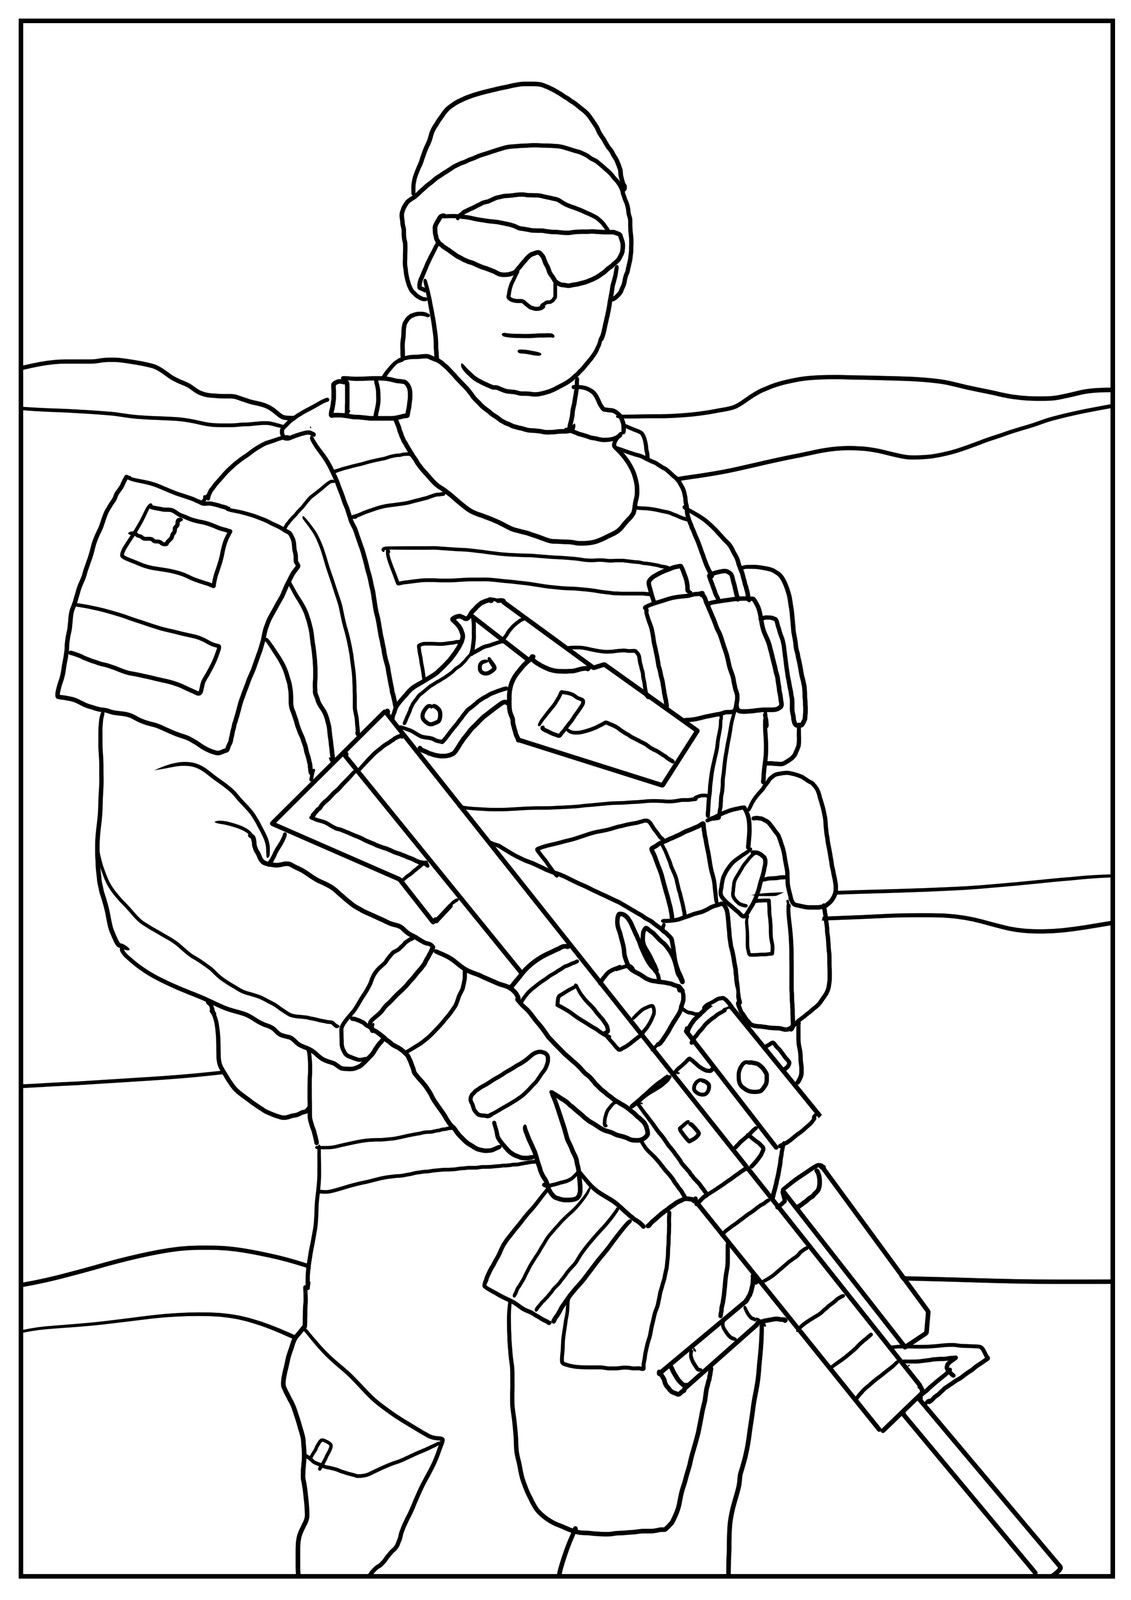 Heavily Armed Us Soldiers Coloring Book Coloring Books Bear Coloring Pages Mermaid Coloring Pages